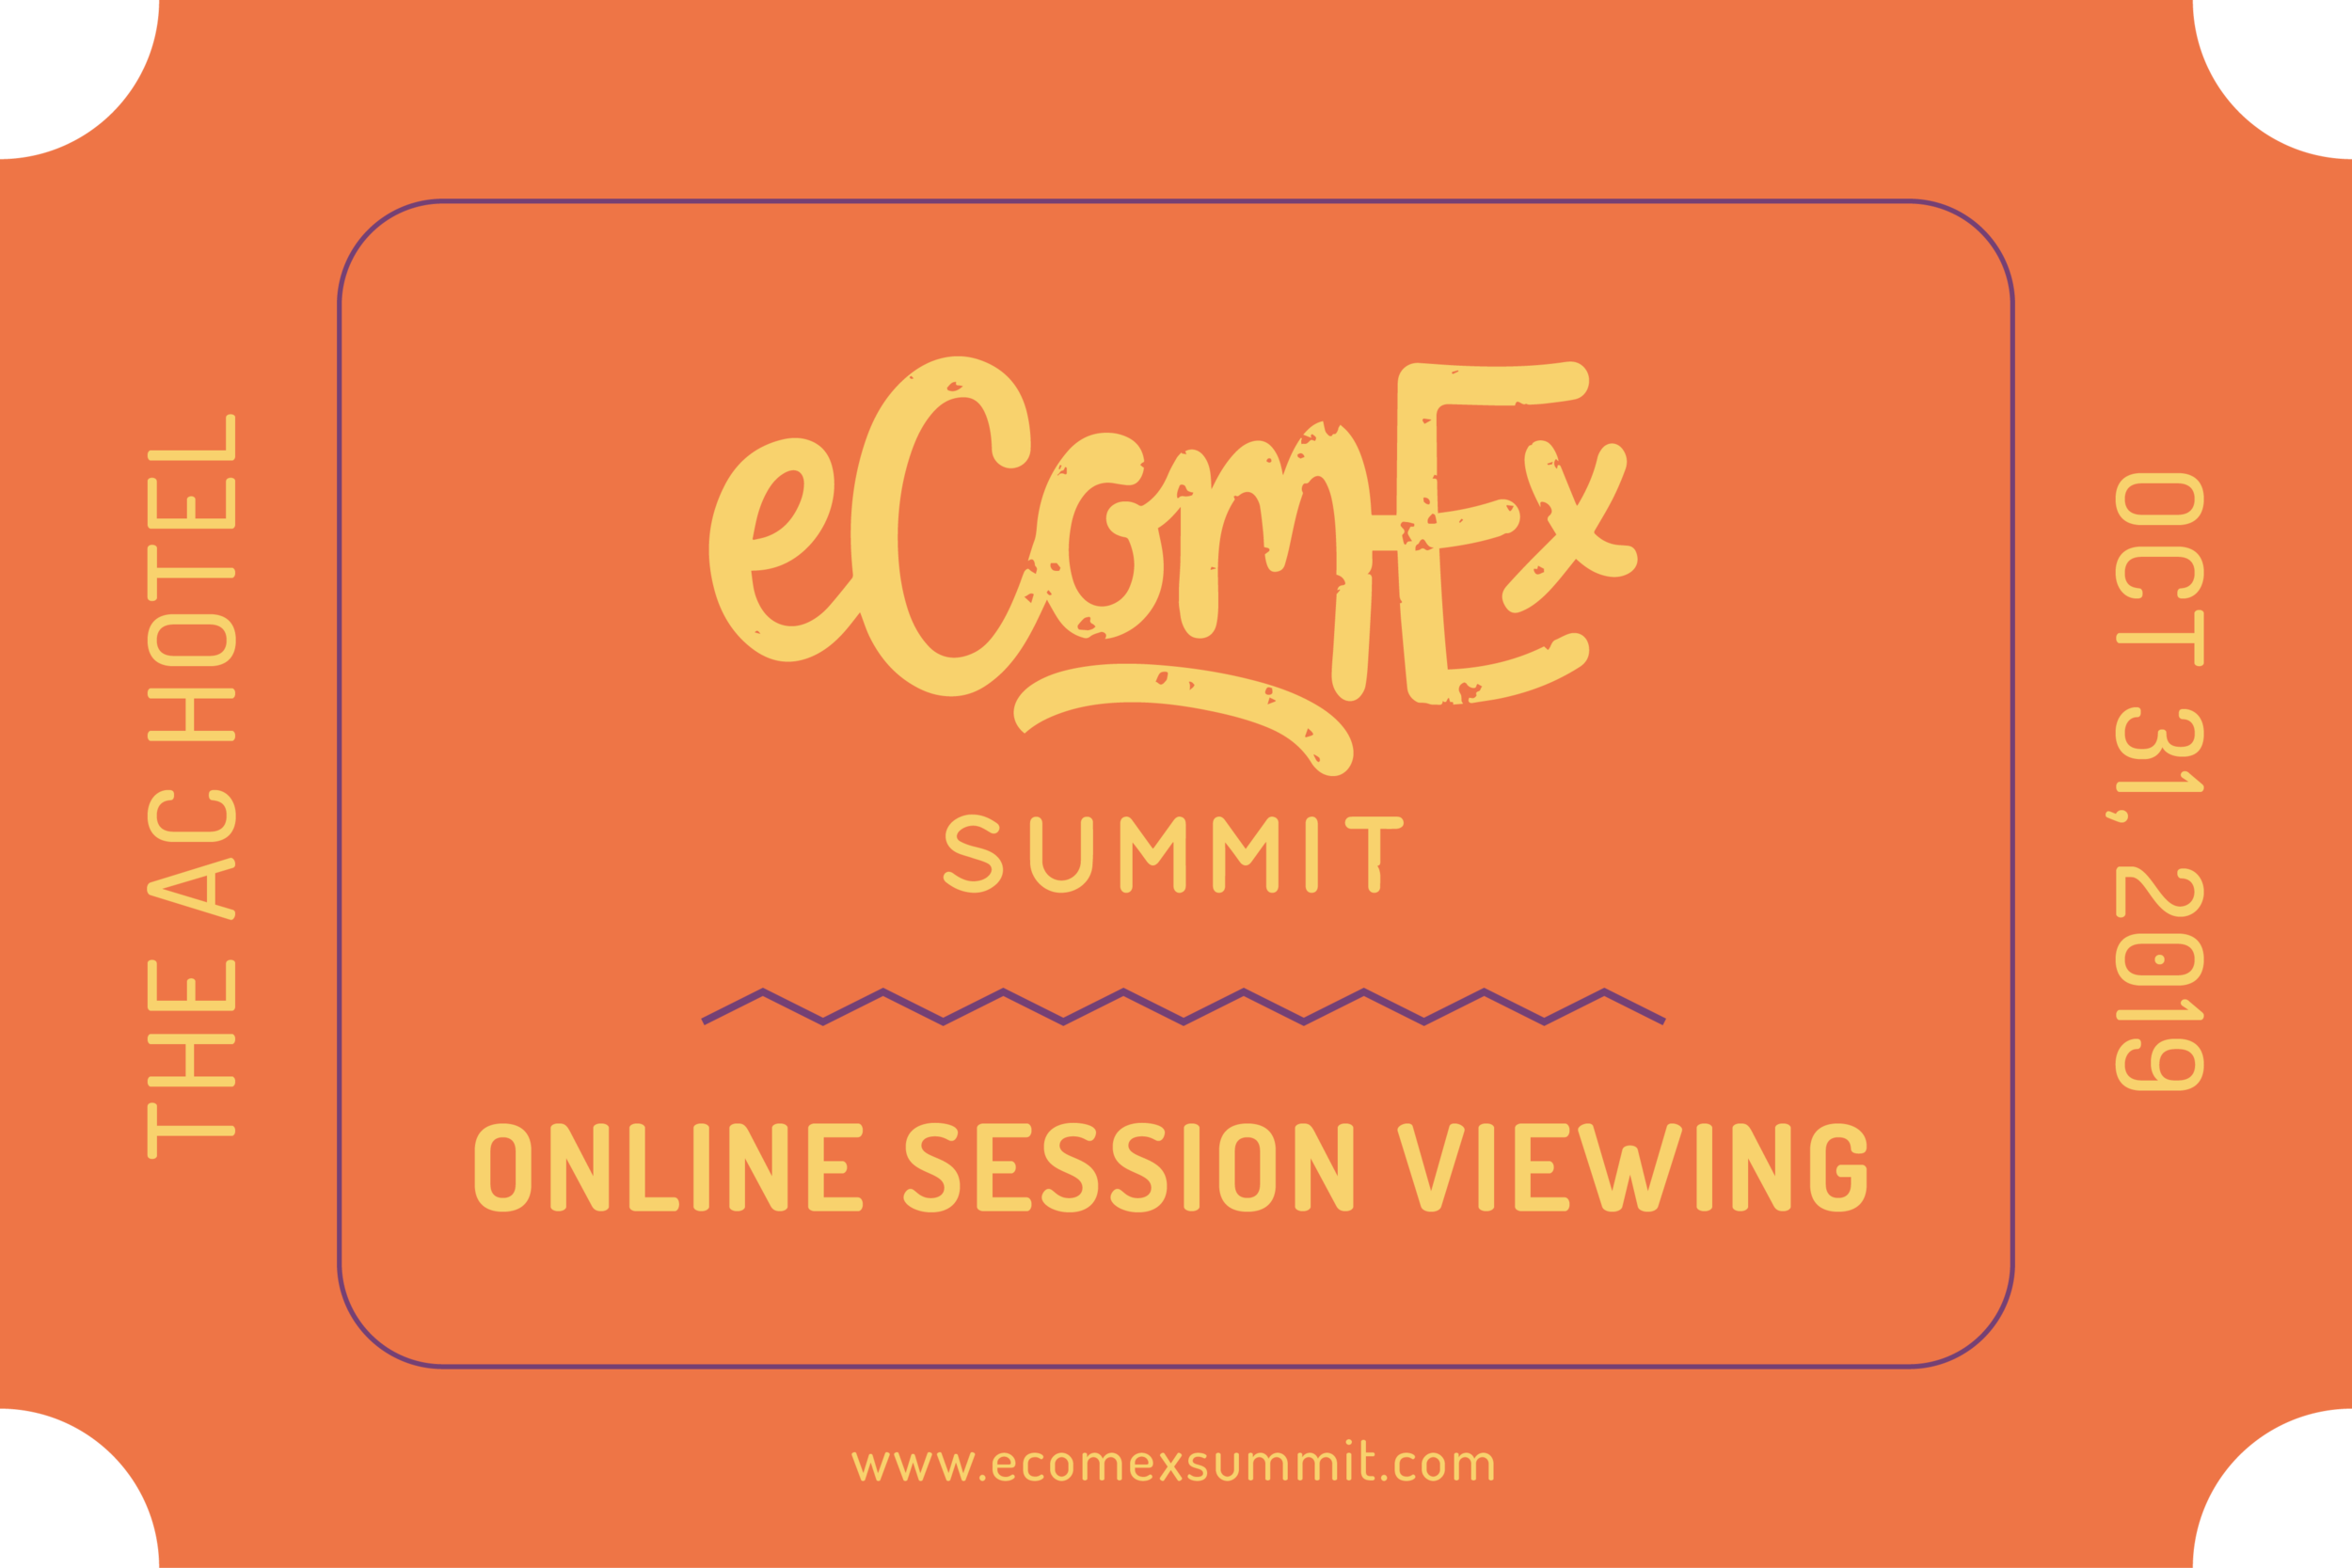 Online Session Viewing -